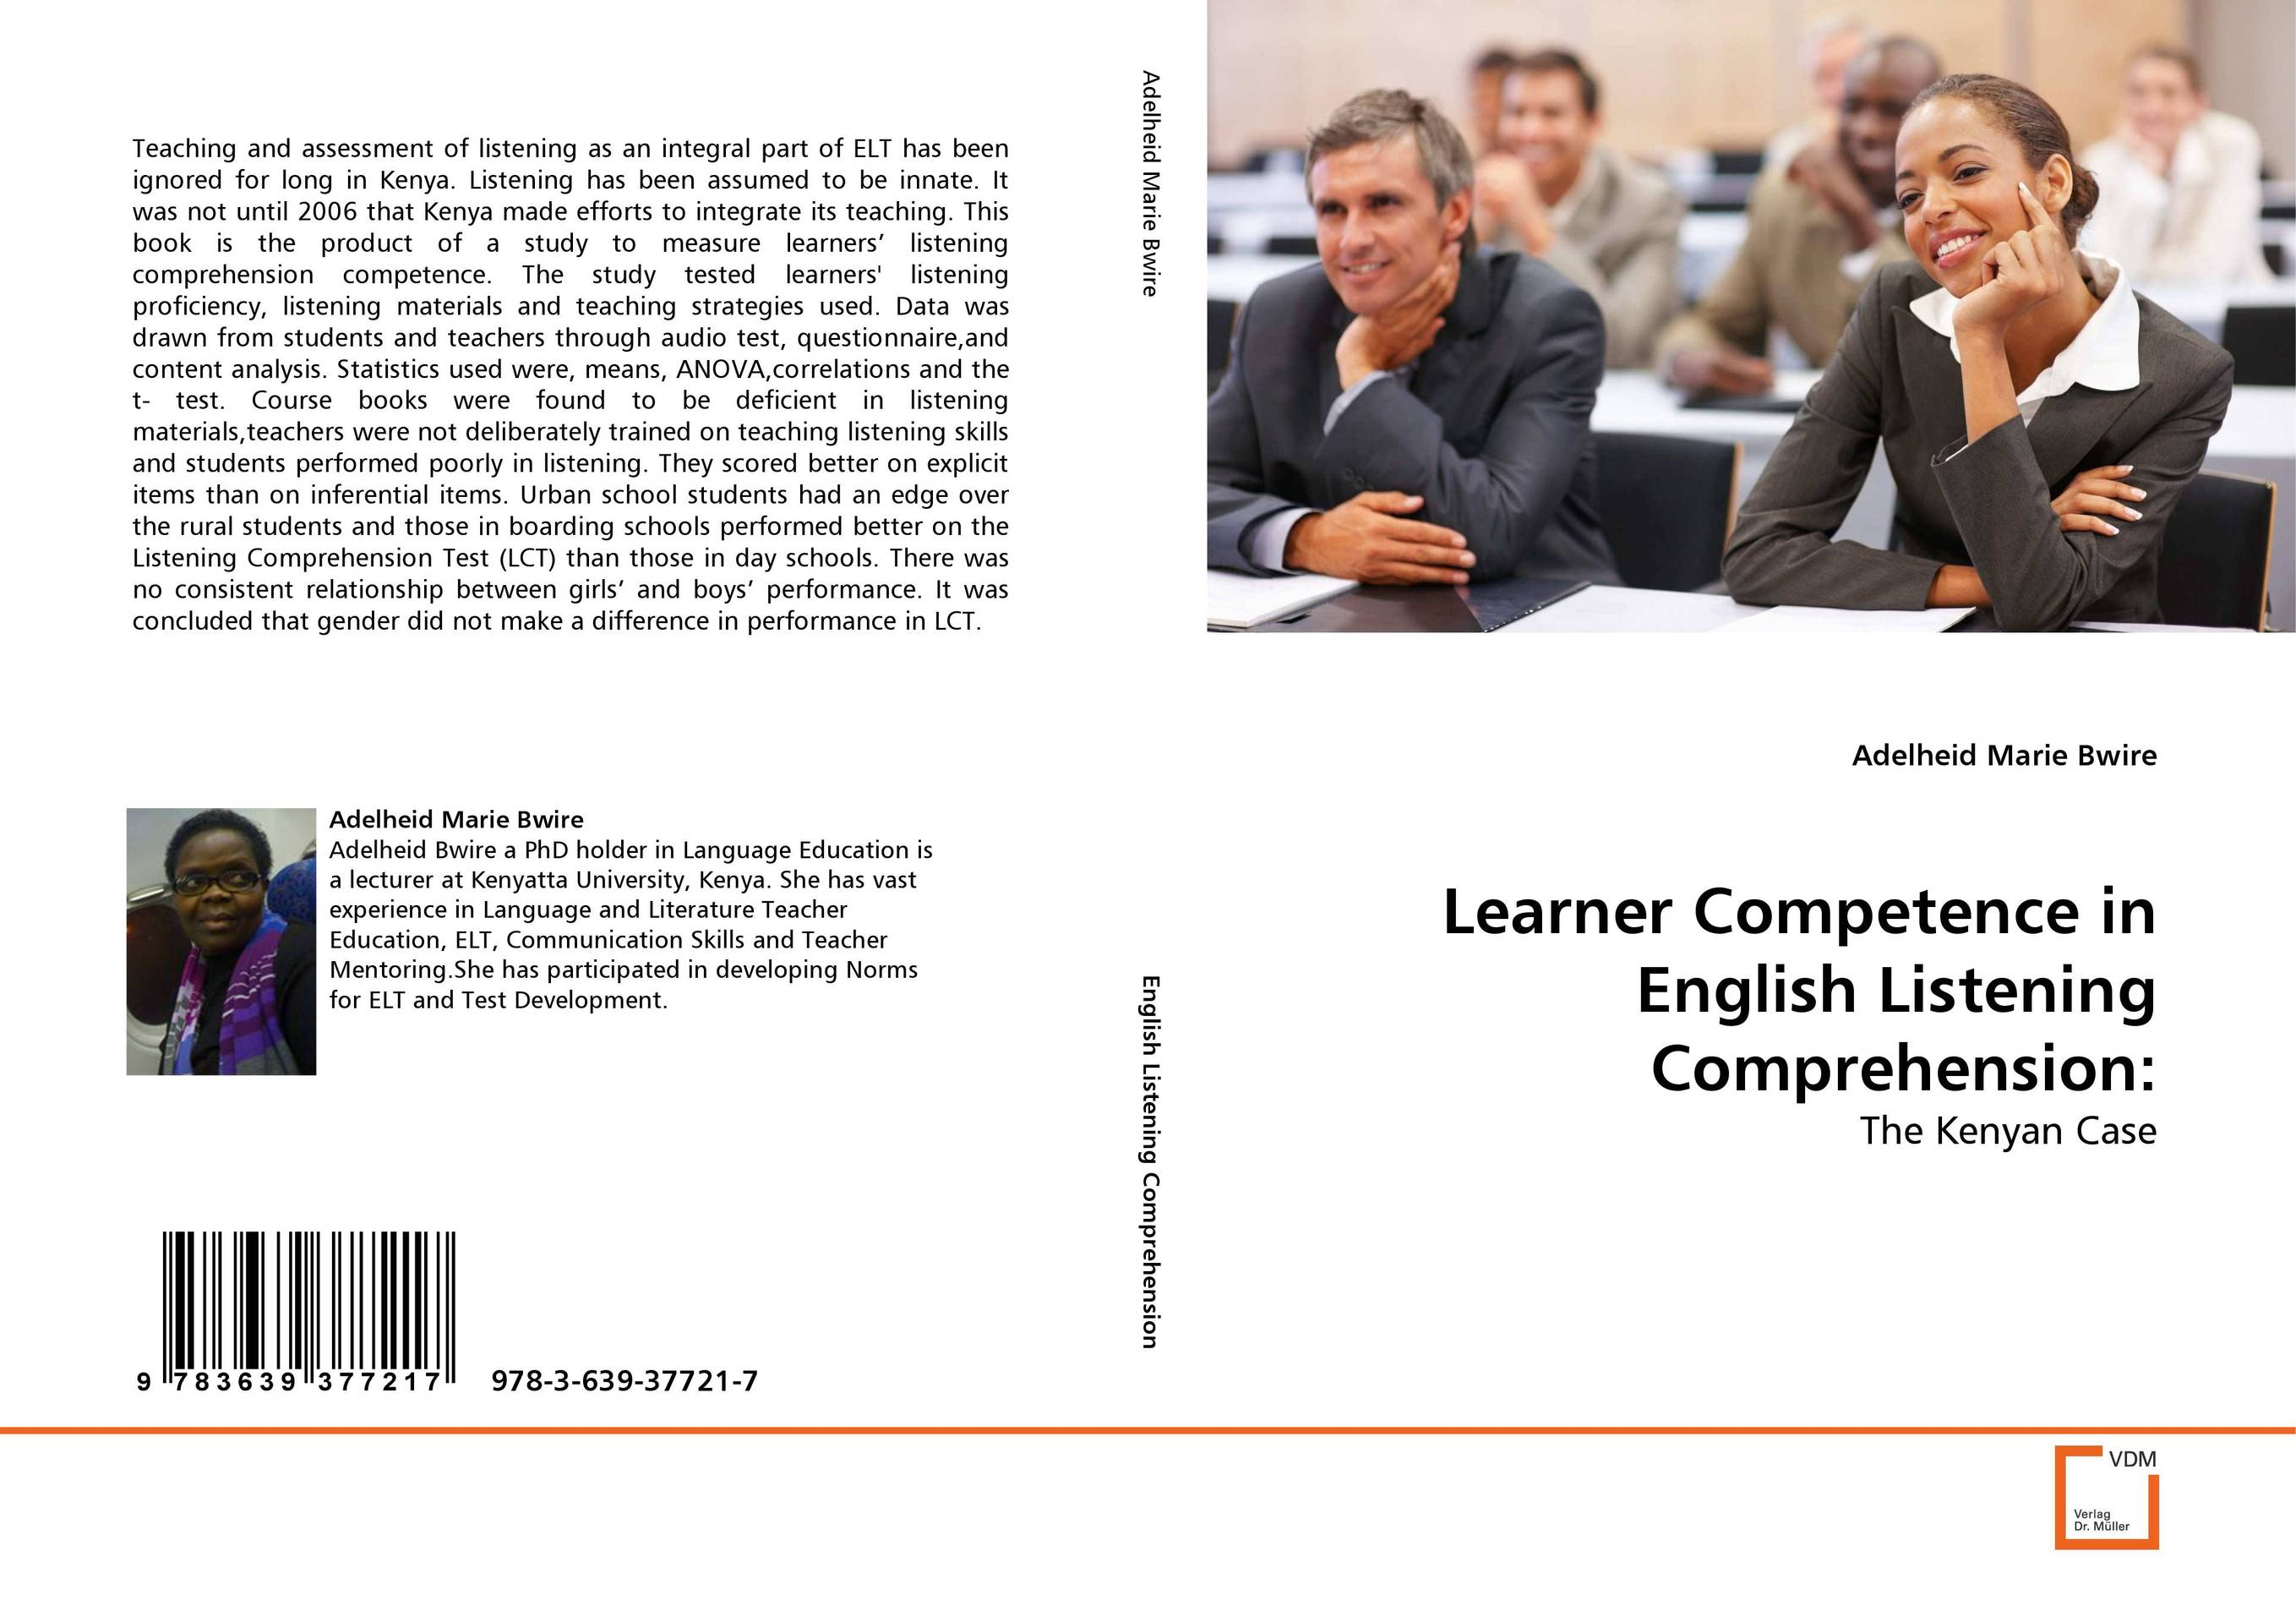 Learner Competence in English Listening Comprehension: teaching mathematics in kenya